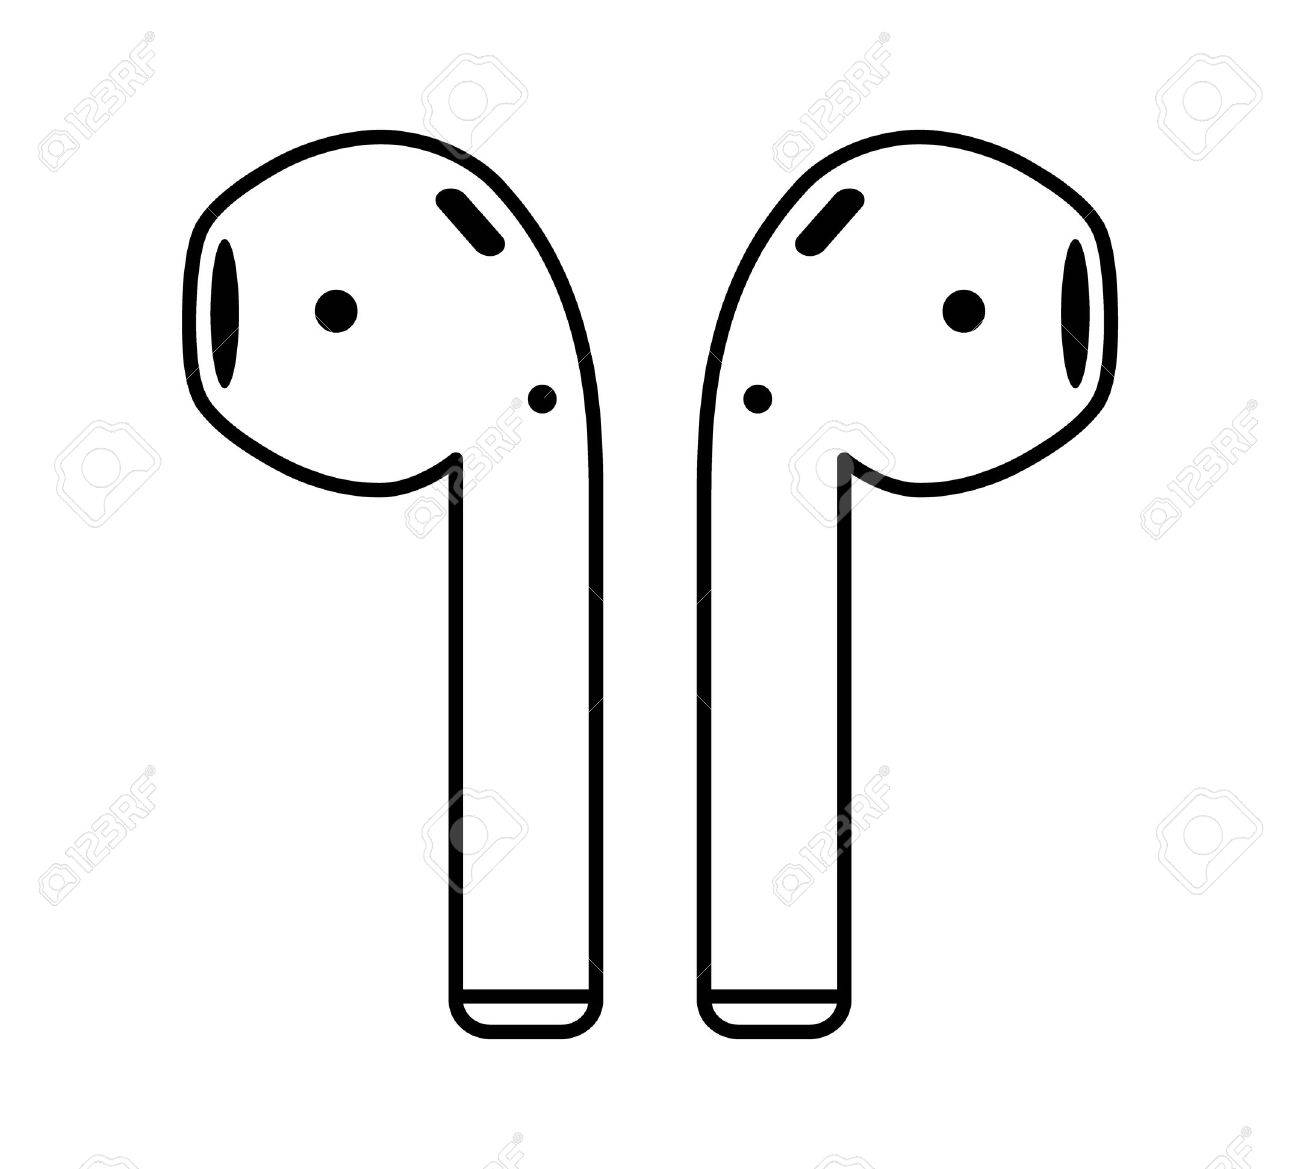 Airpods wireless headphones thin line art icon for apps and websites - 62747901